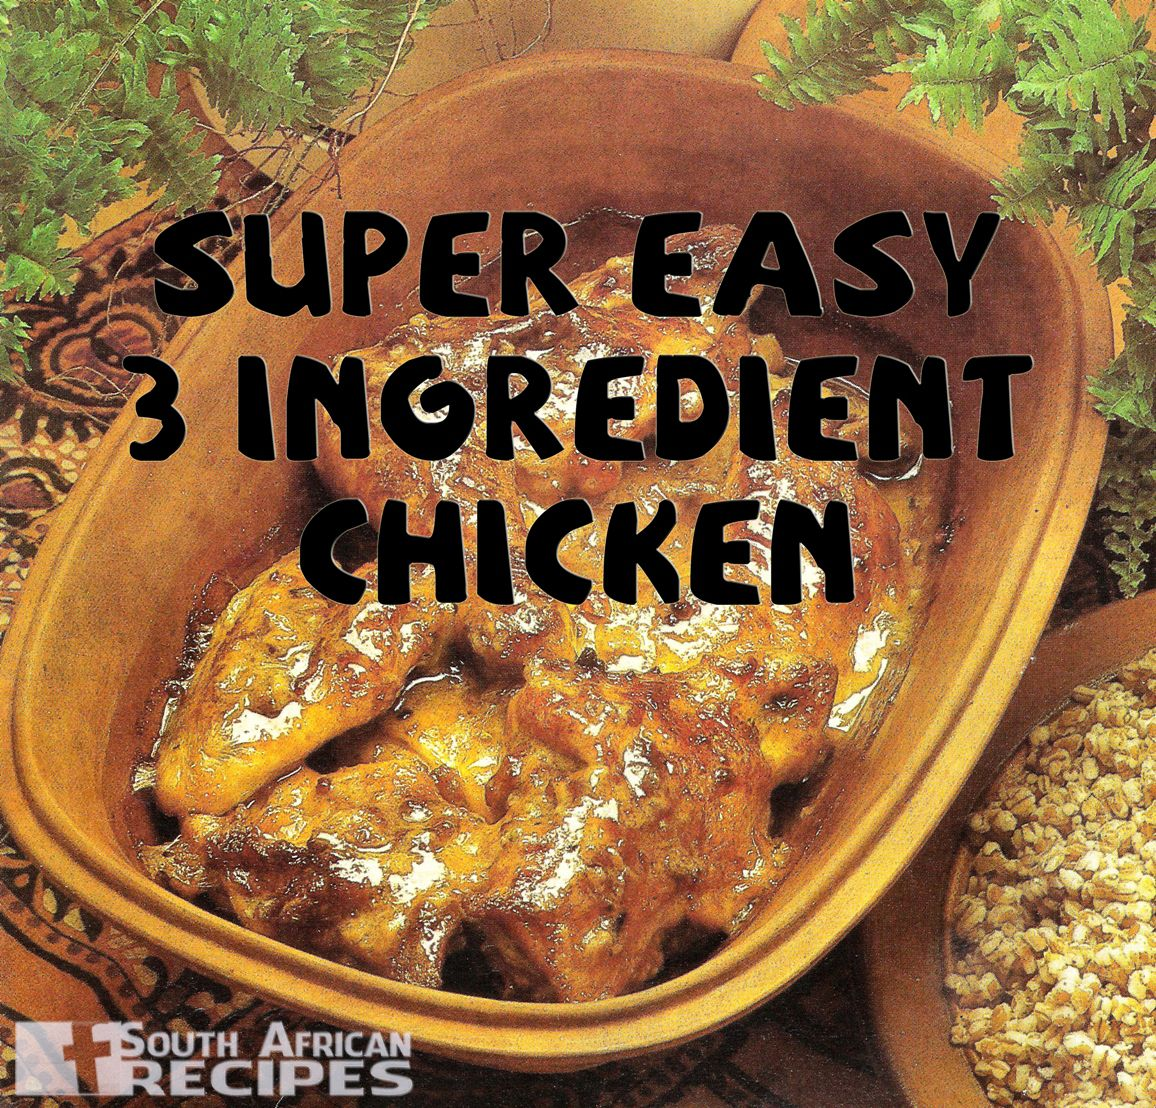 South African Recipes Super Easy 3 Ingredient Chicken Antionette